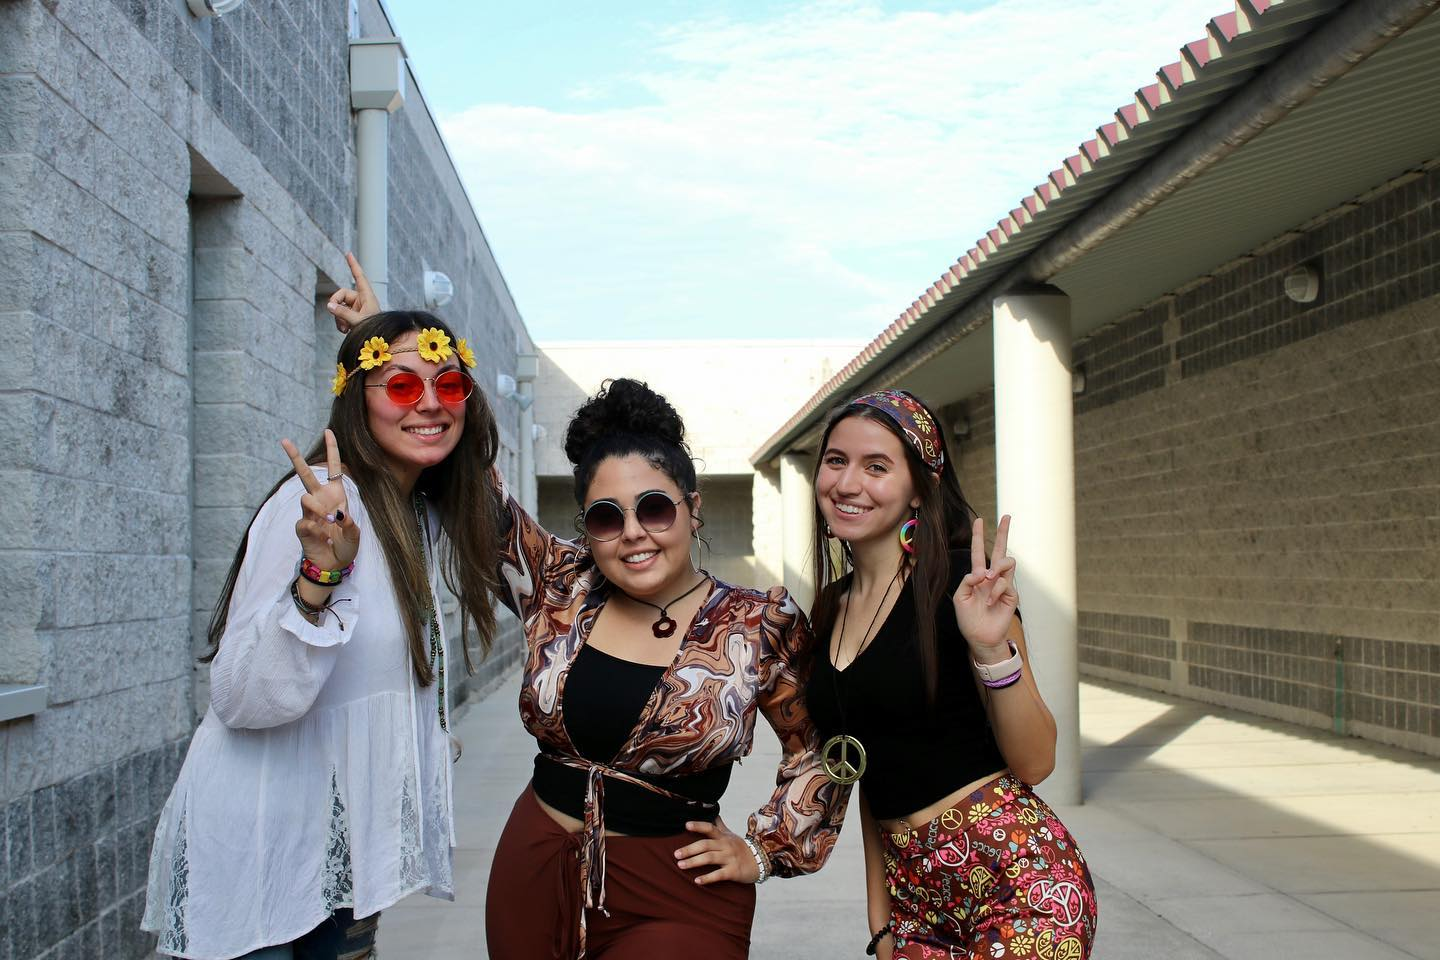 Newspaper students Daneila Pena, Isabella Rey, and Nicole Pi pose in their Hippie Day attire.